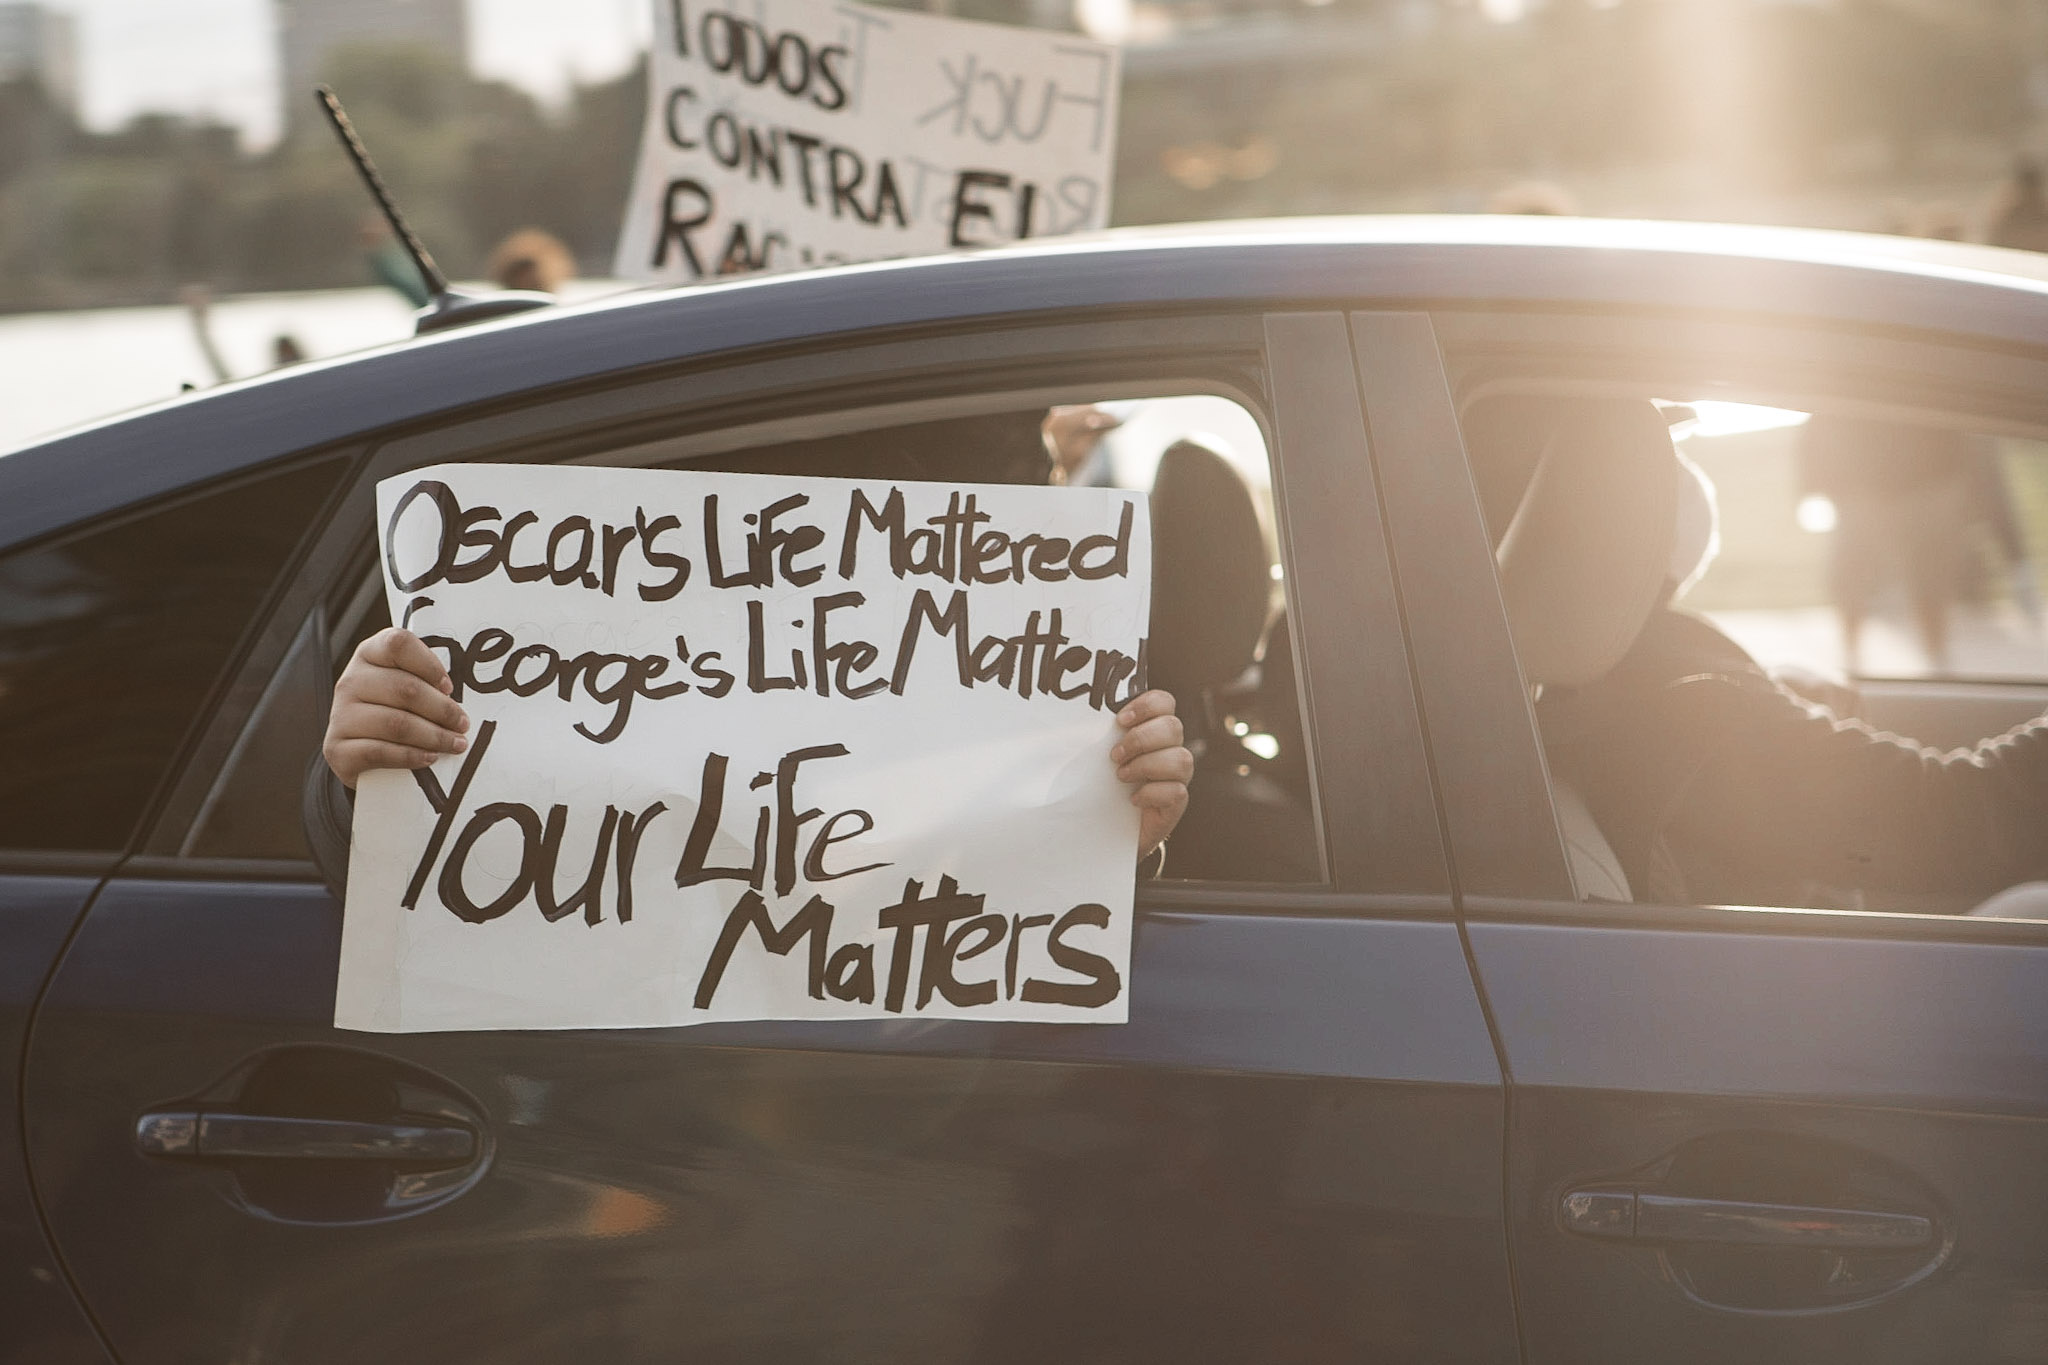 A protester inside a car holds up a sign calling for racial justice. It reads Oscar's Life Mattered, George's Life Matters, Your Life Matters.